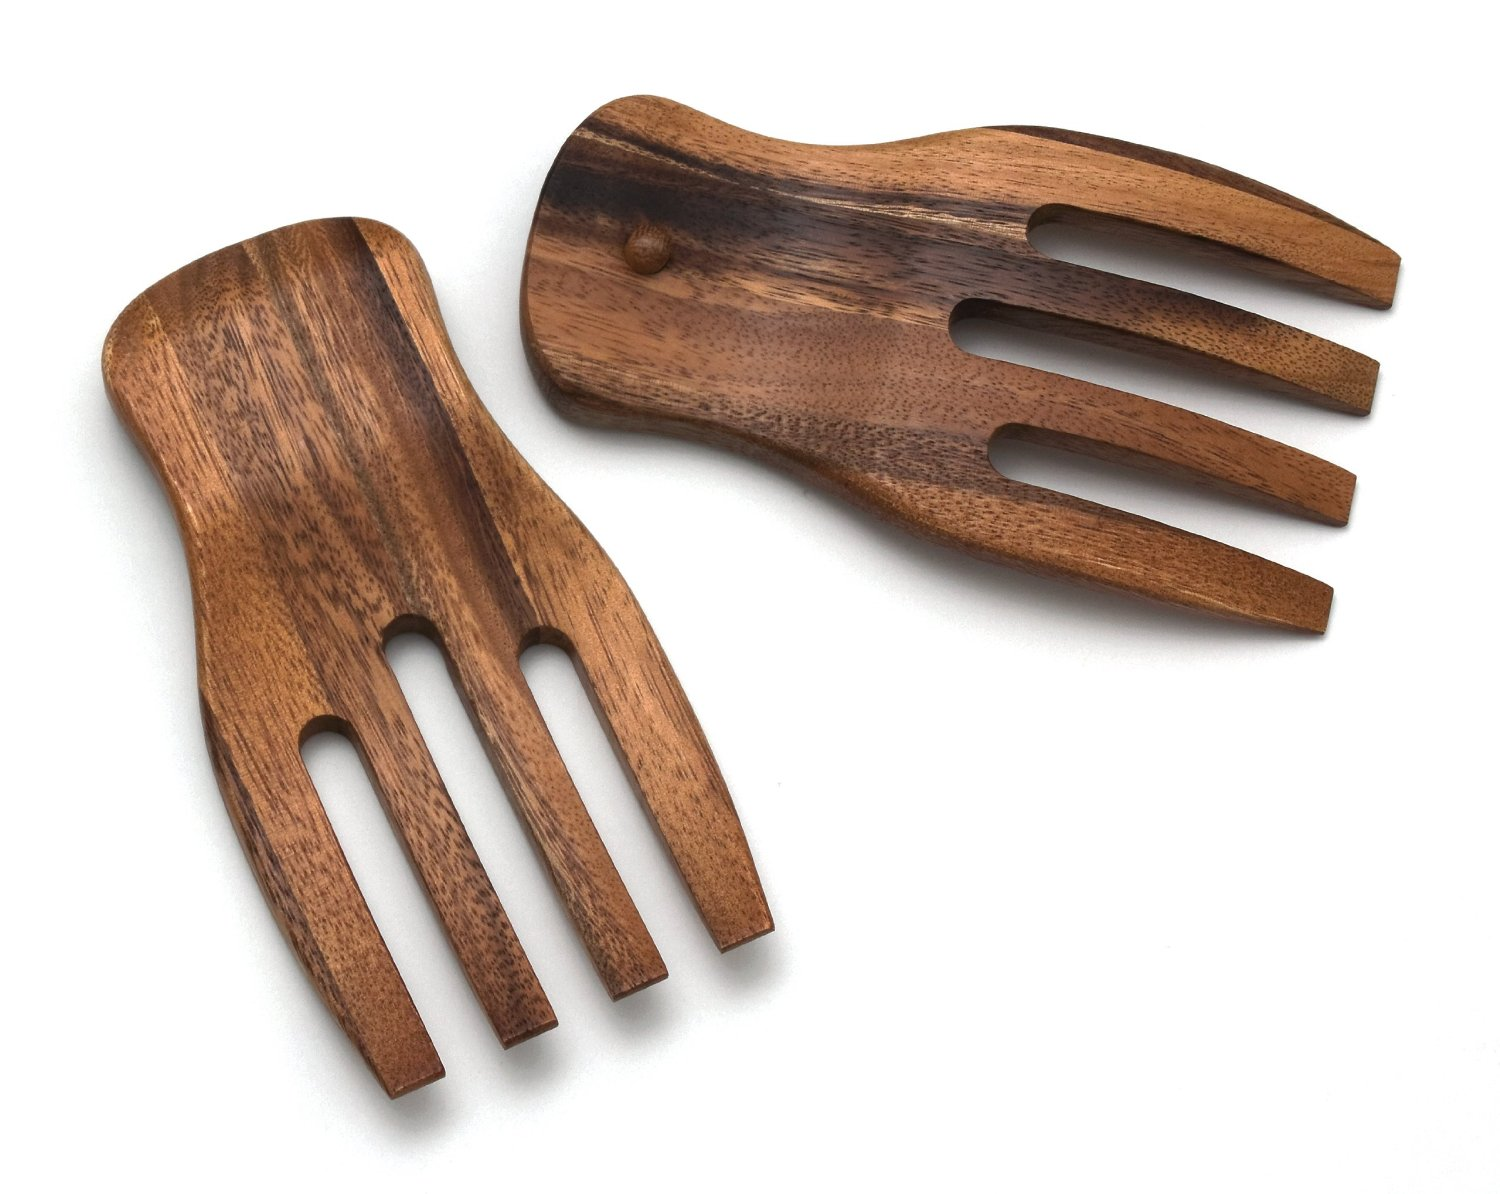 (click image to order from Fluffys' trusted Amazon Partner) Wooden salad tongs make tossing salads easy.